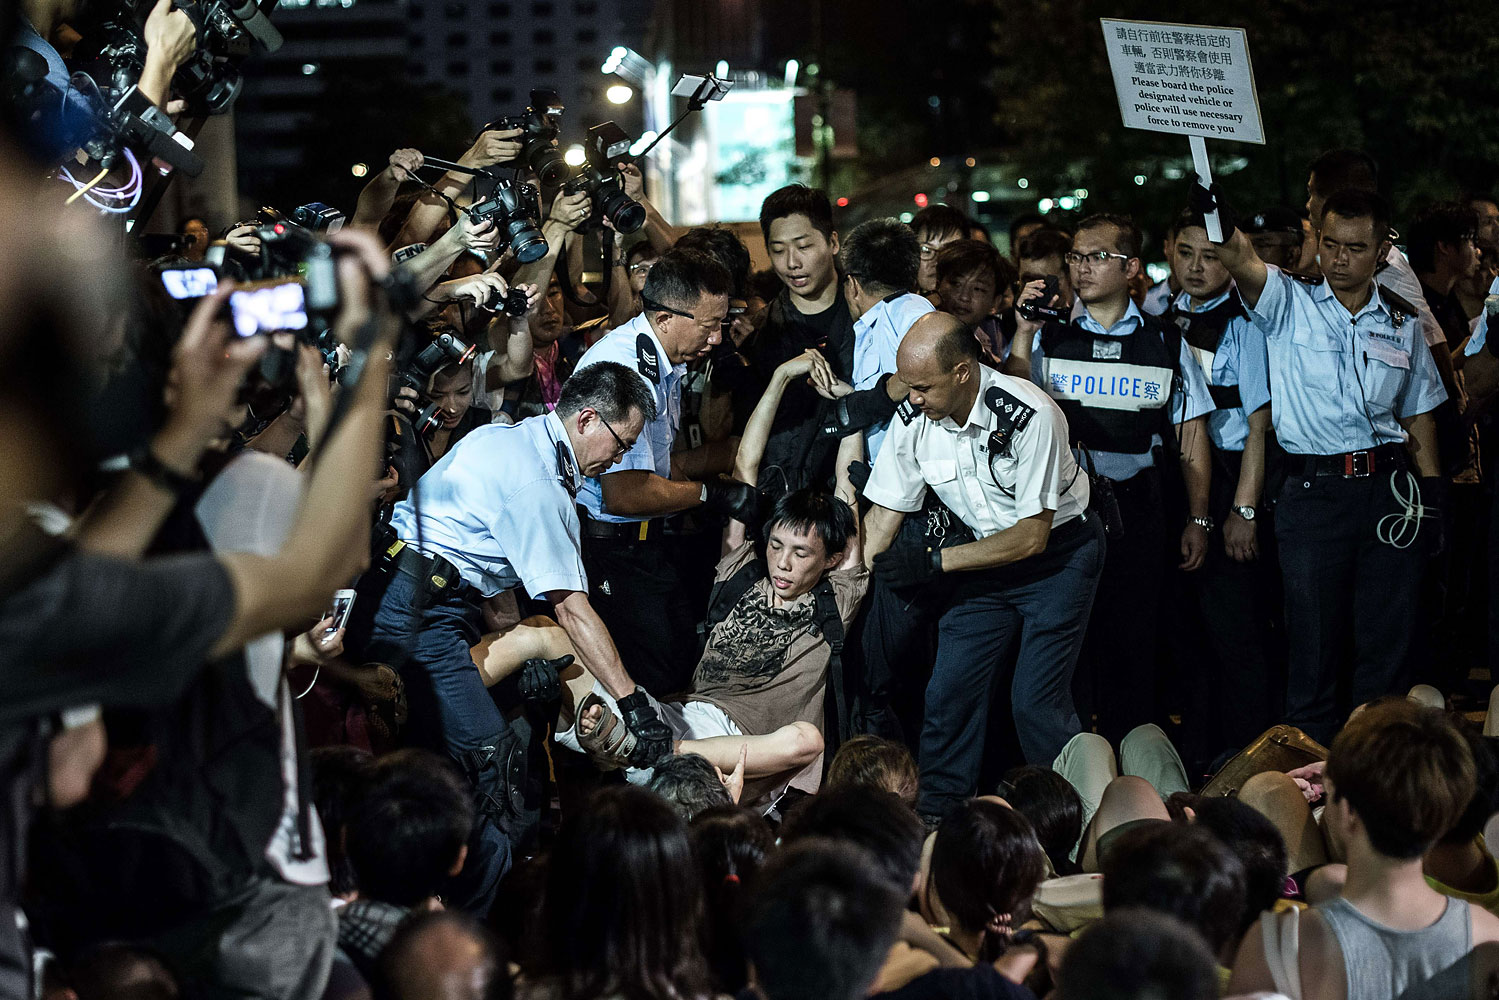 Policemen remove protesters in Central district after a rally seeking greater democracy in Hong Kong on July 2, 2014